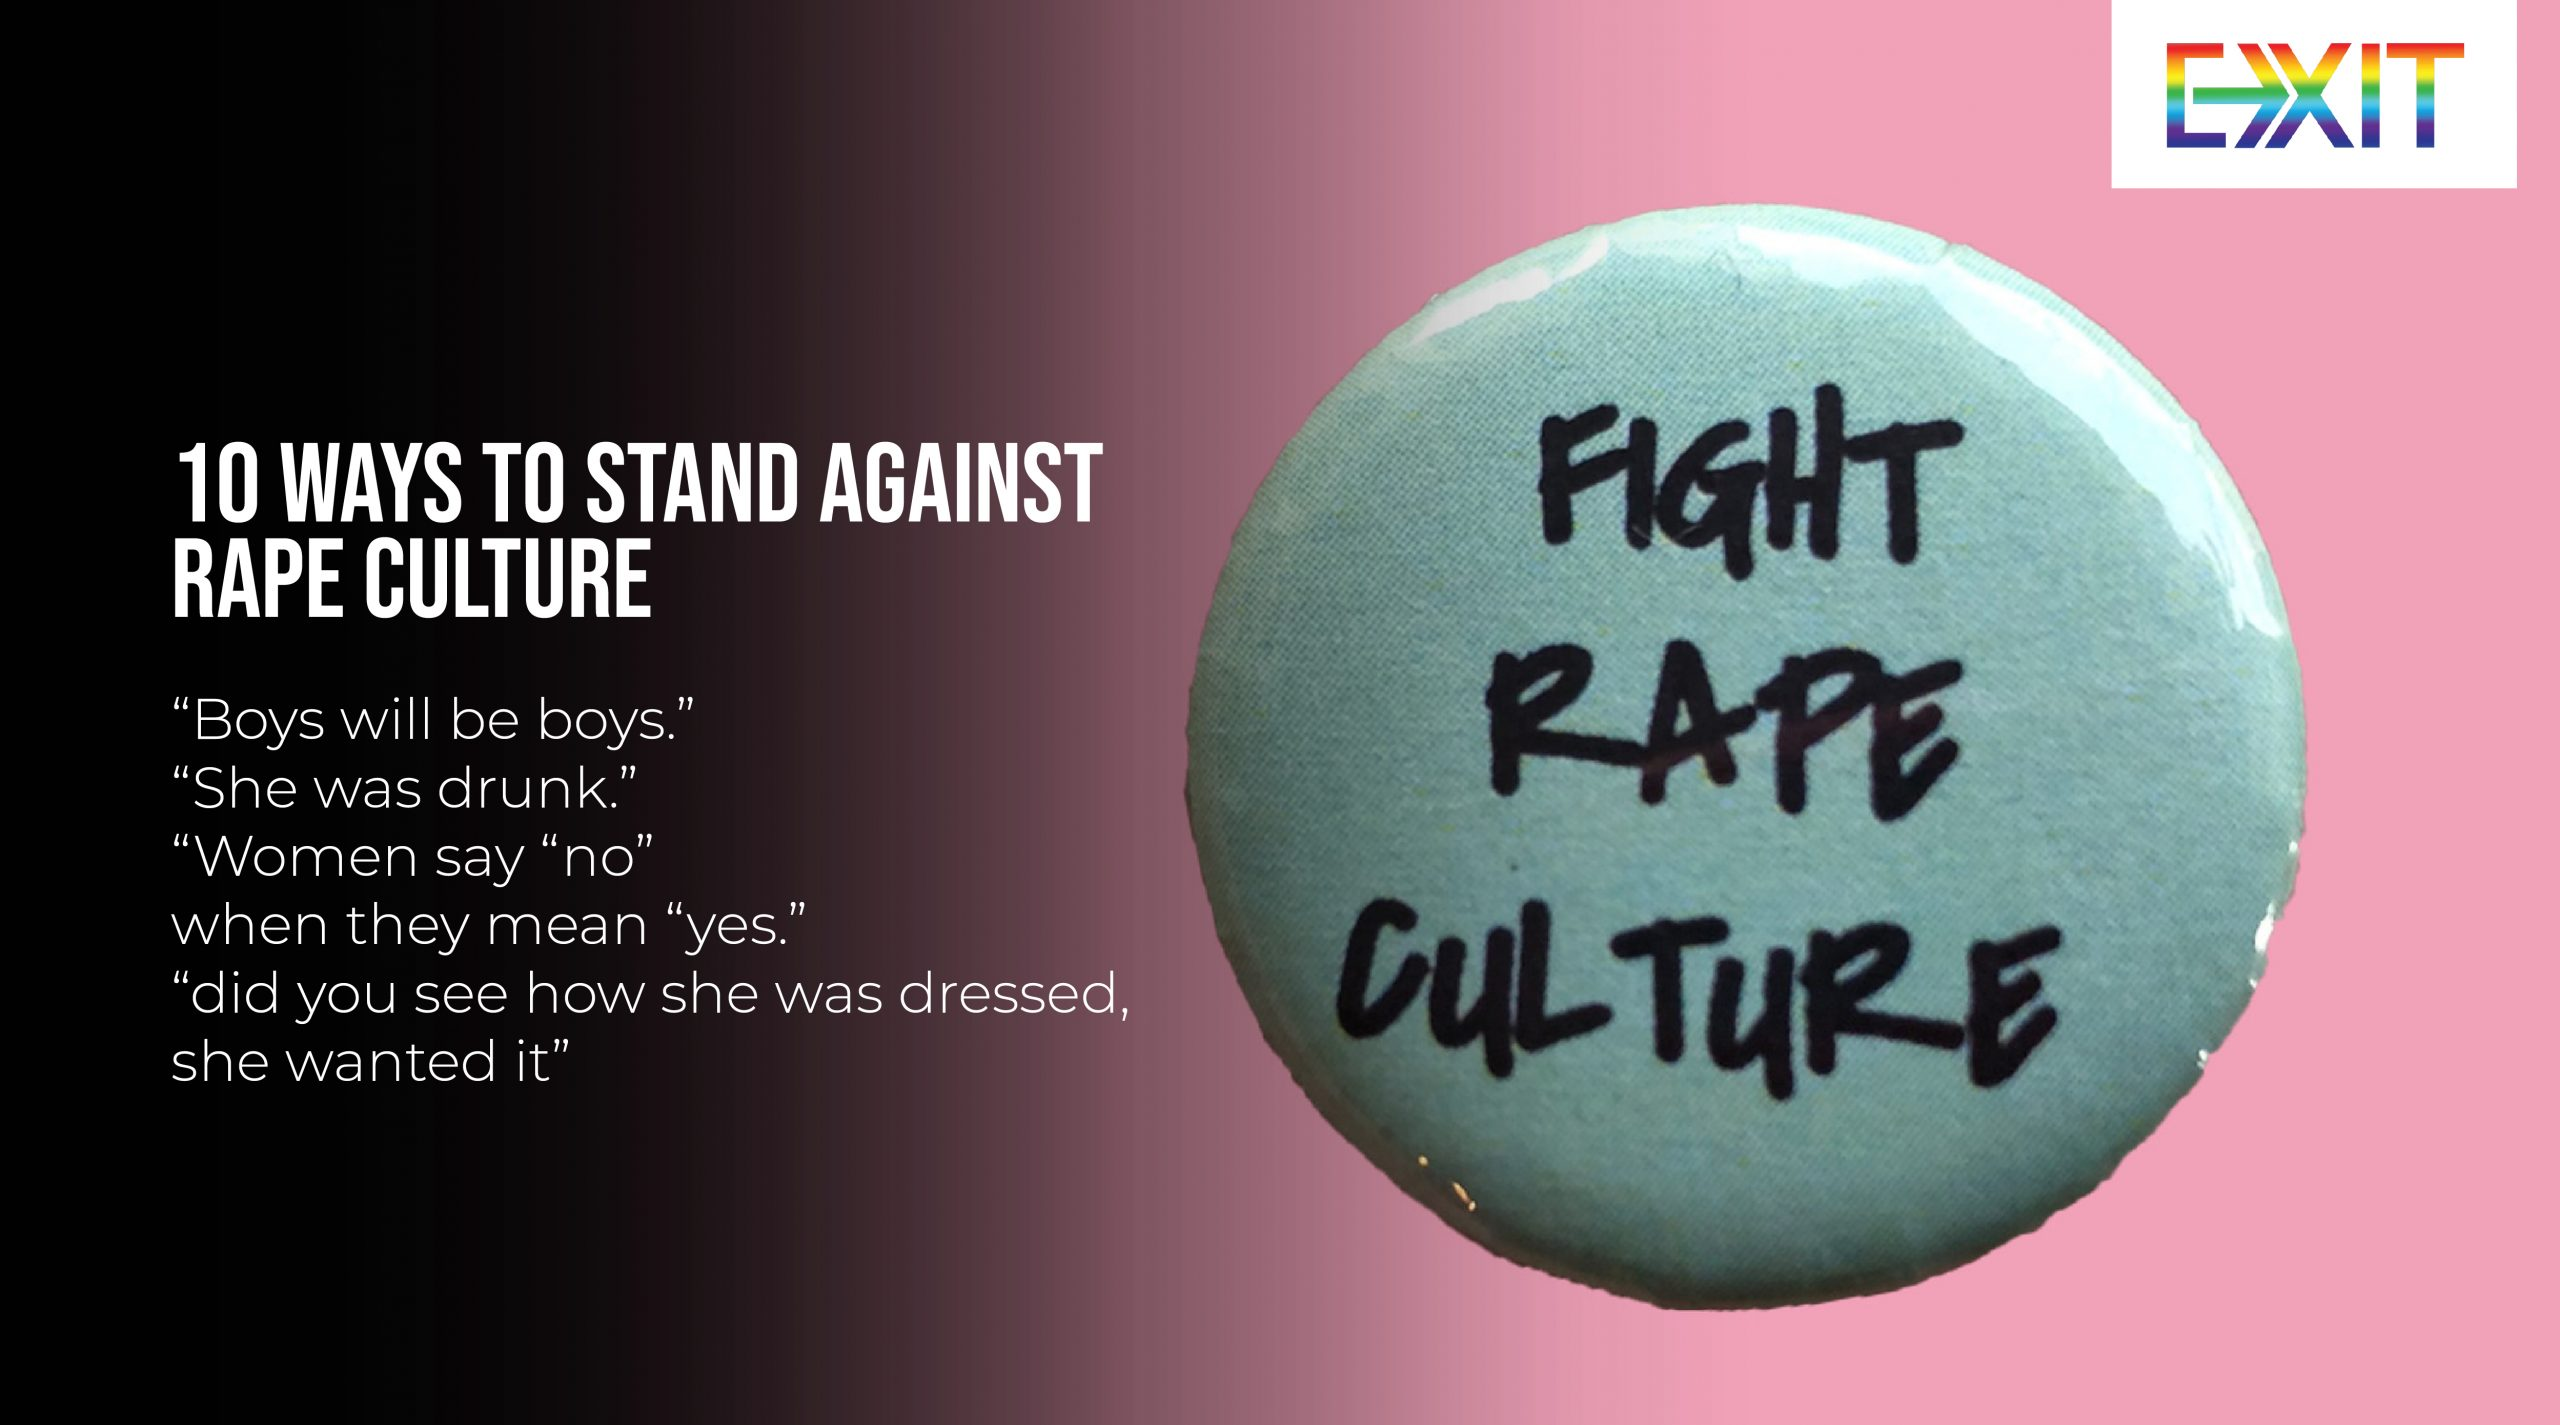 10 WAYS TO STAND AGAINST RAPE CULTURE